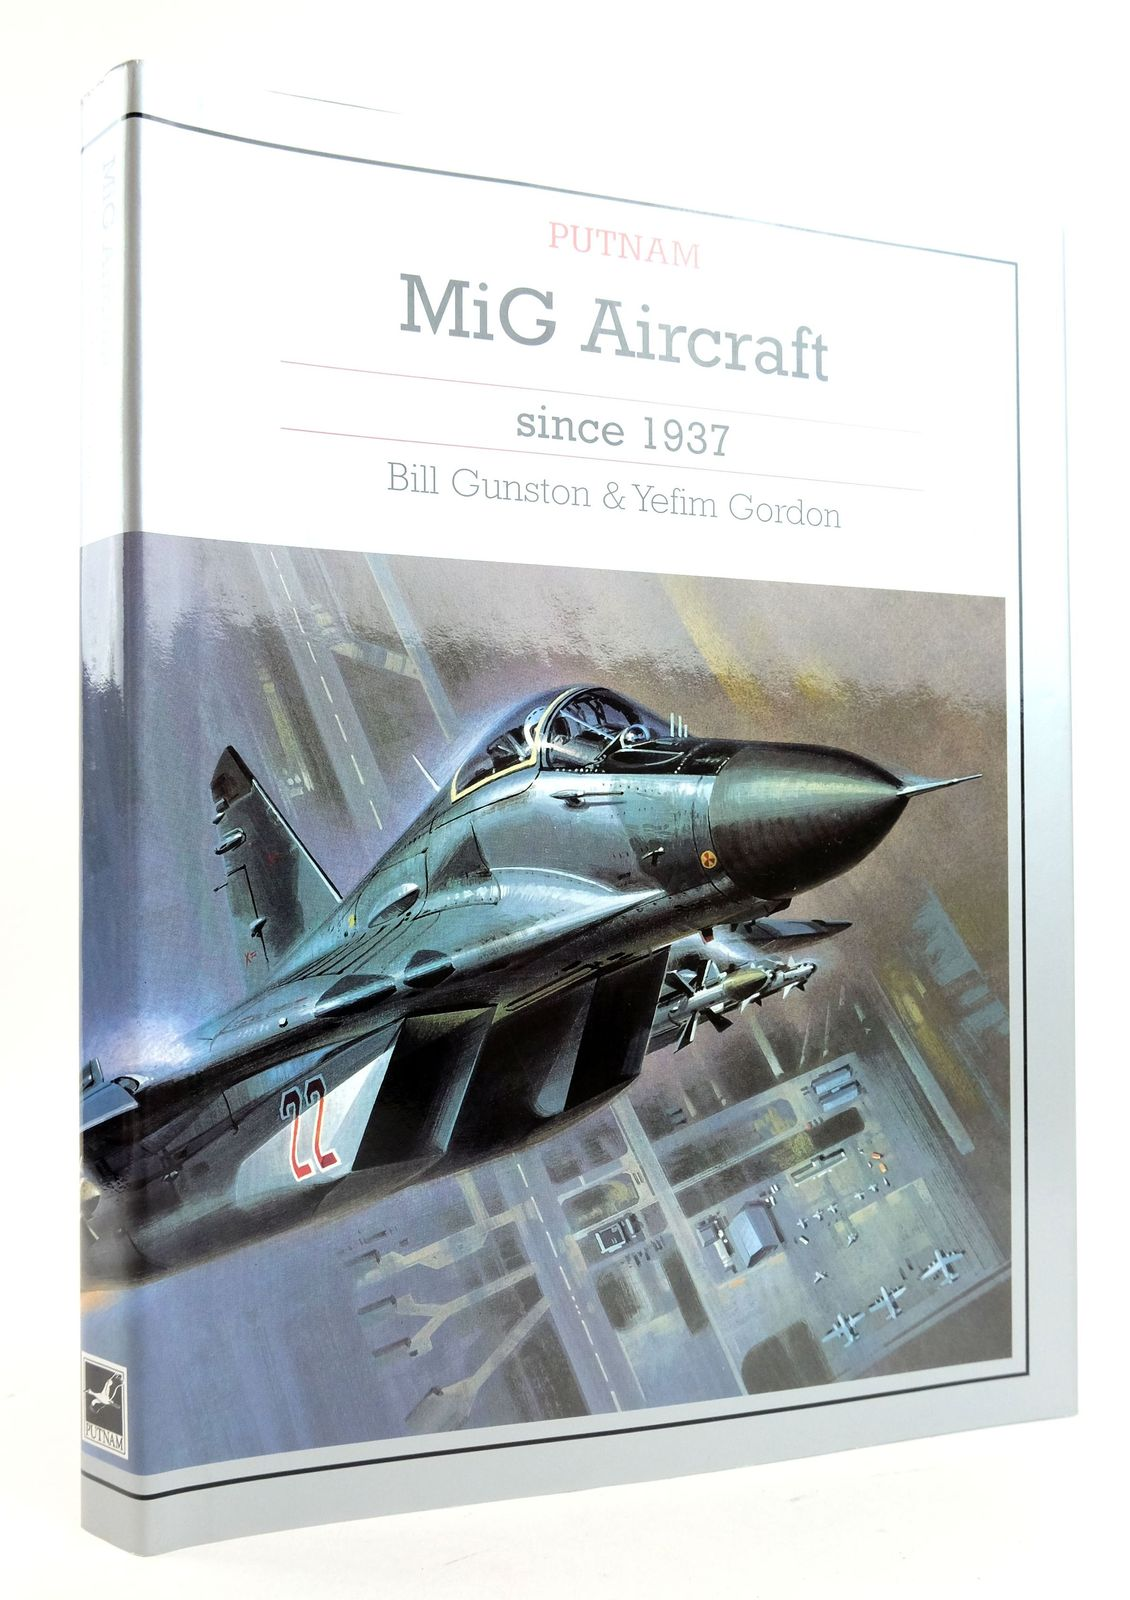 Photo of MIG AIRCRAFT SINCE 1937 written by Gunston, Bill Gordon, Yefim published by Putnam (STOCK CODE: 1819839)  for sale by Stella & Rose's Books